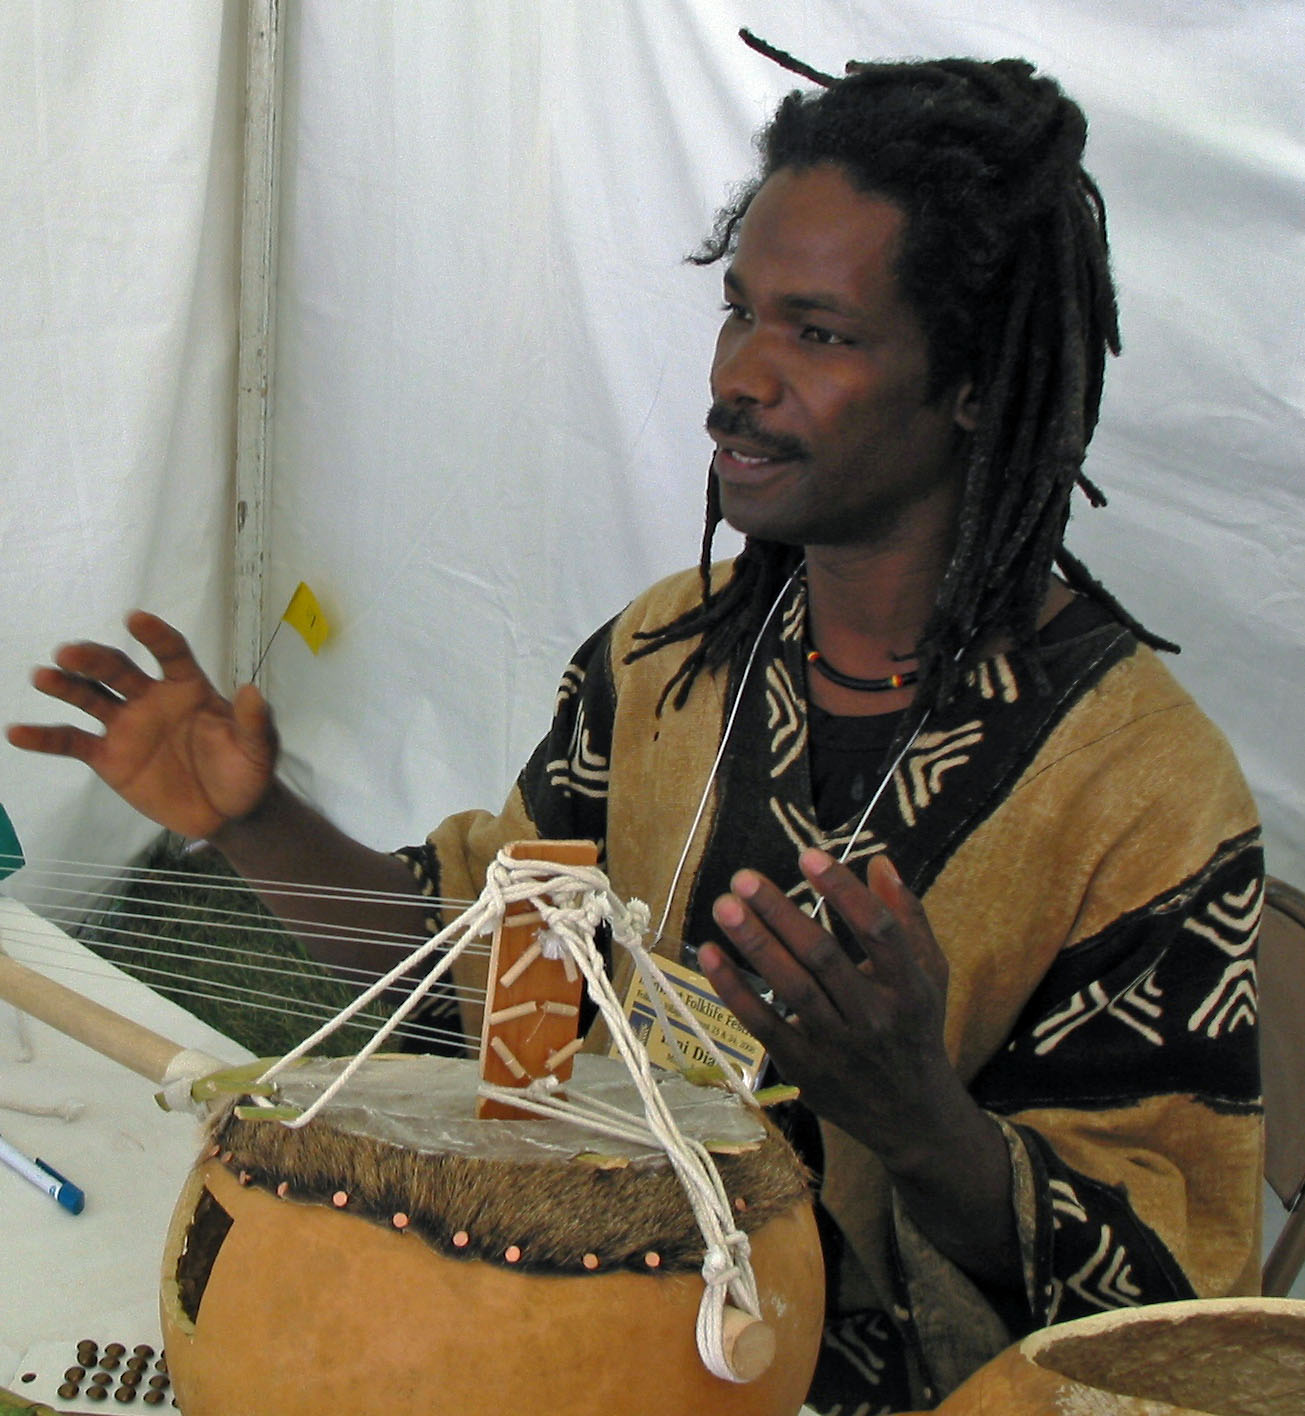 Tani Diakite of Madison makes and plays Malian lutes, especially the kamalen'goni.